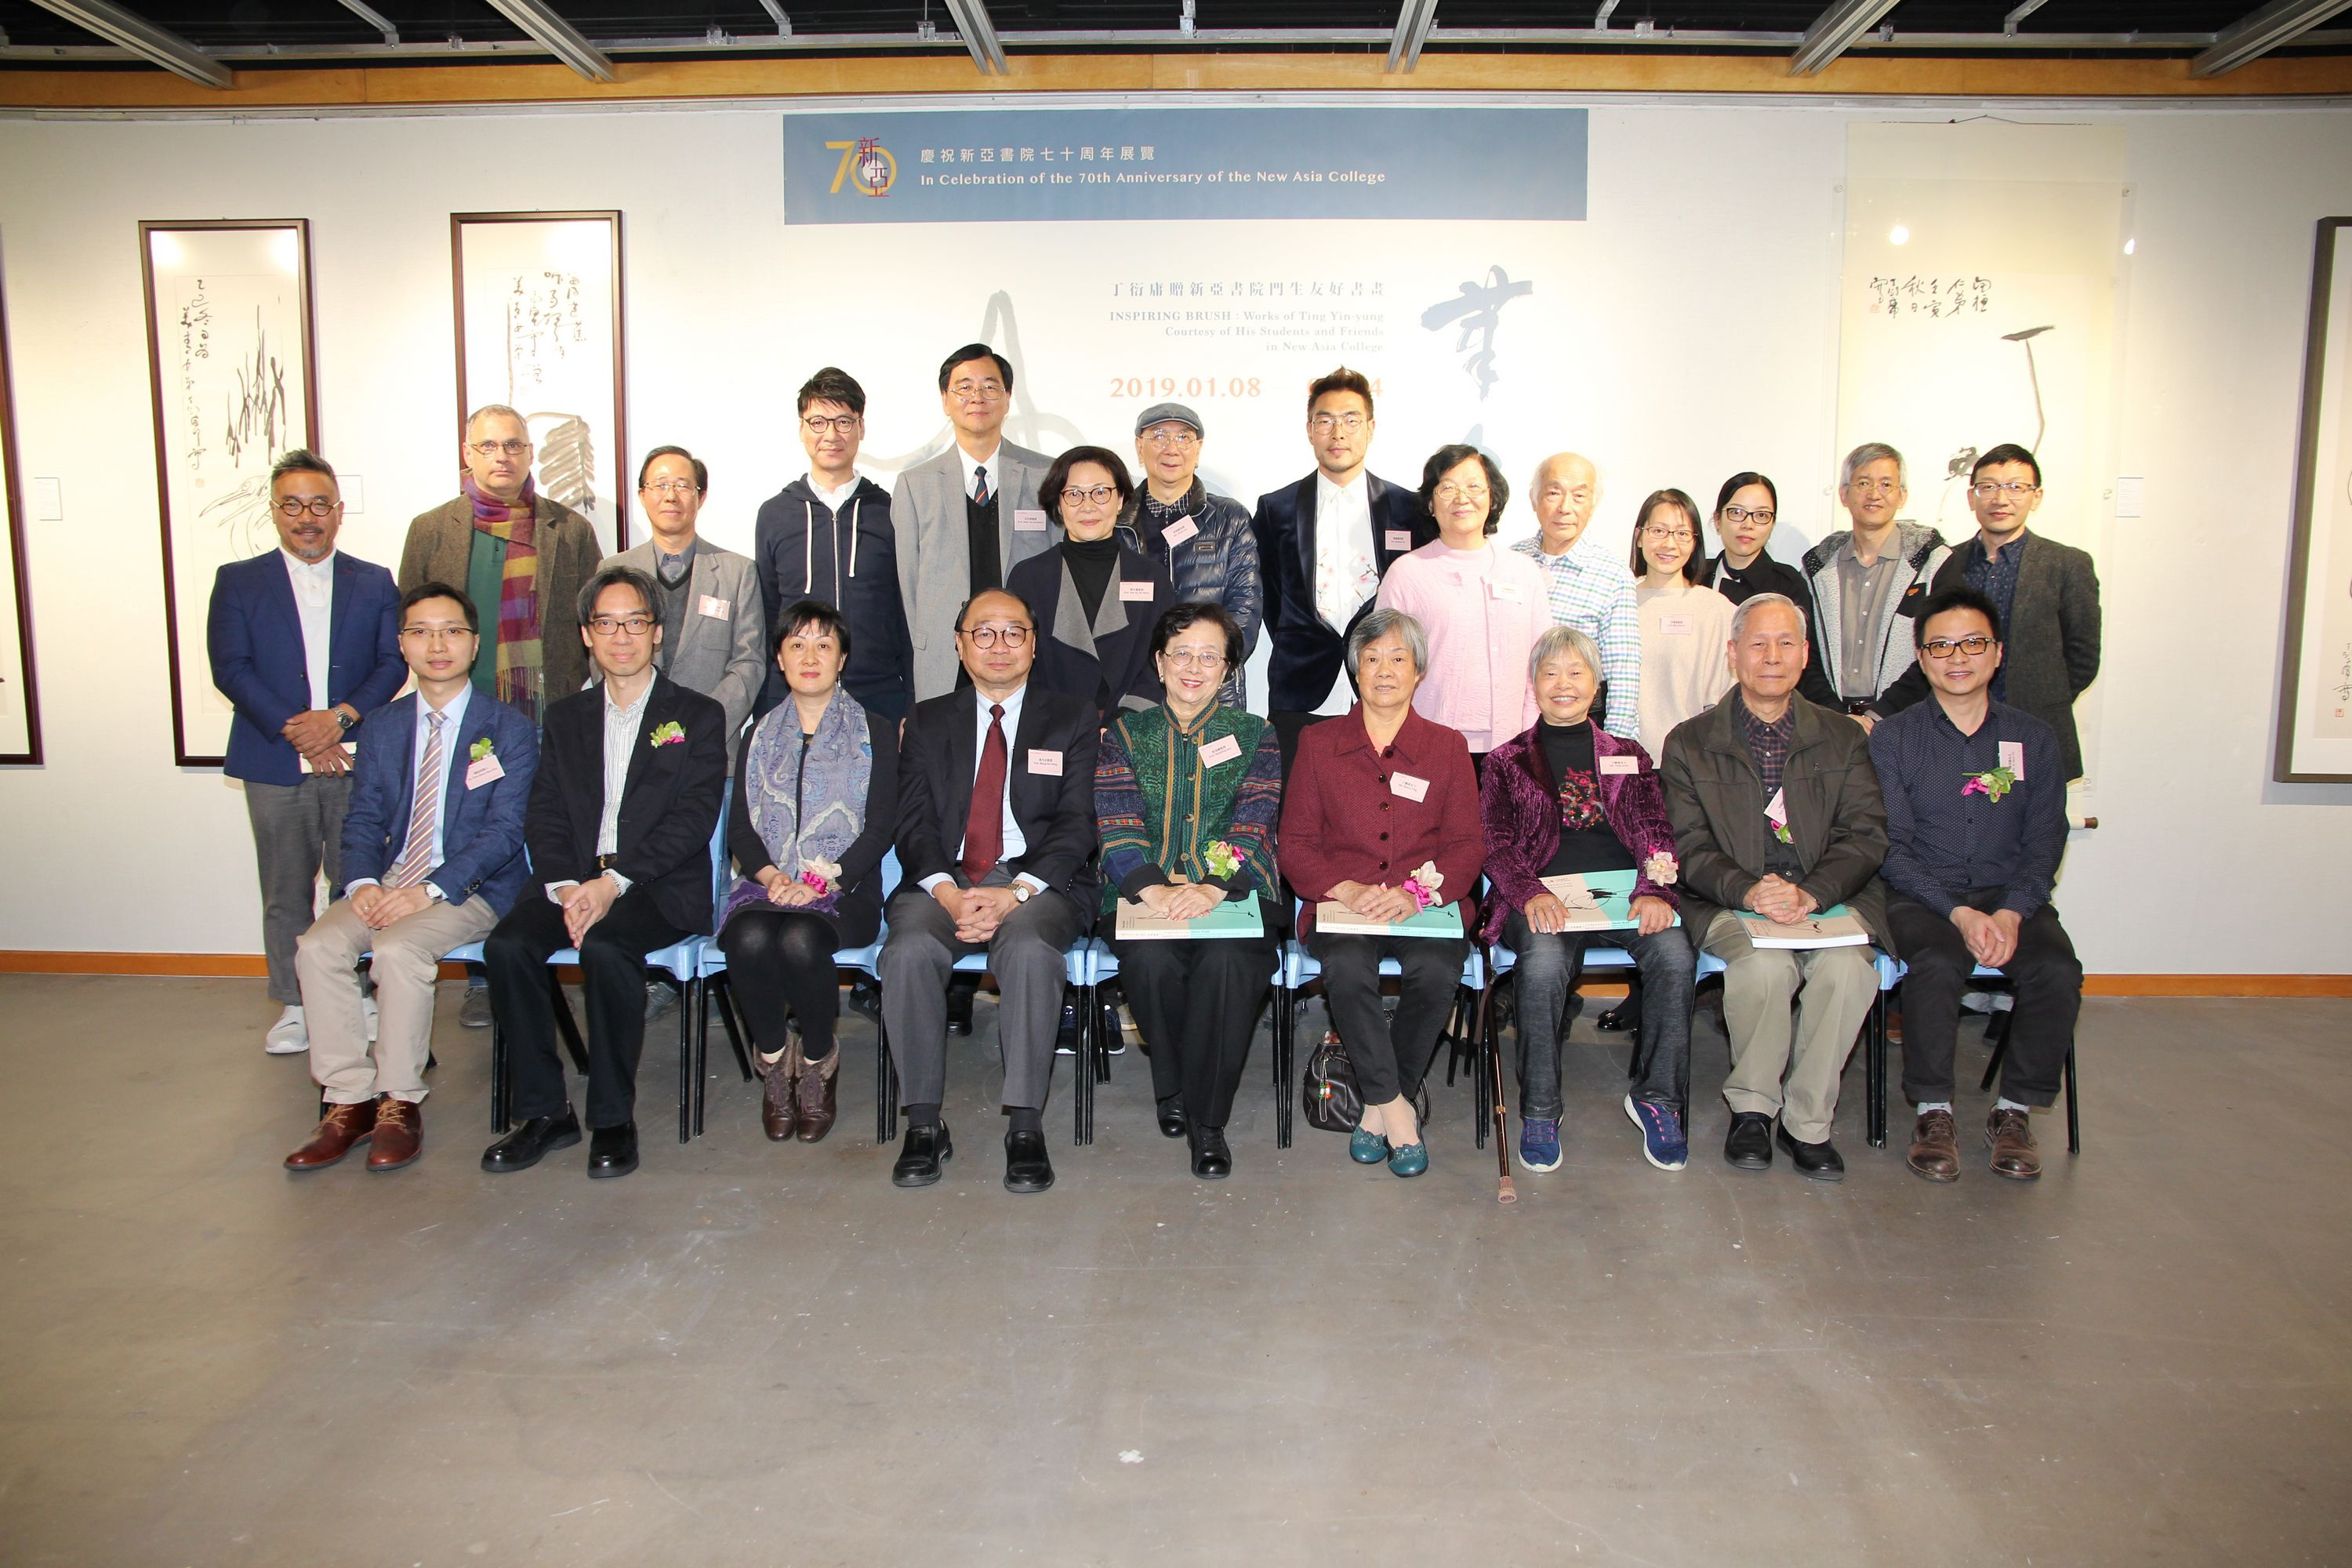 The ribbon cutting guests and representatives of New Asia College and the Department of Fine Arts, CUHK.